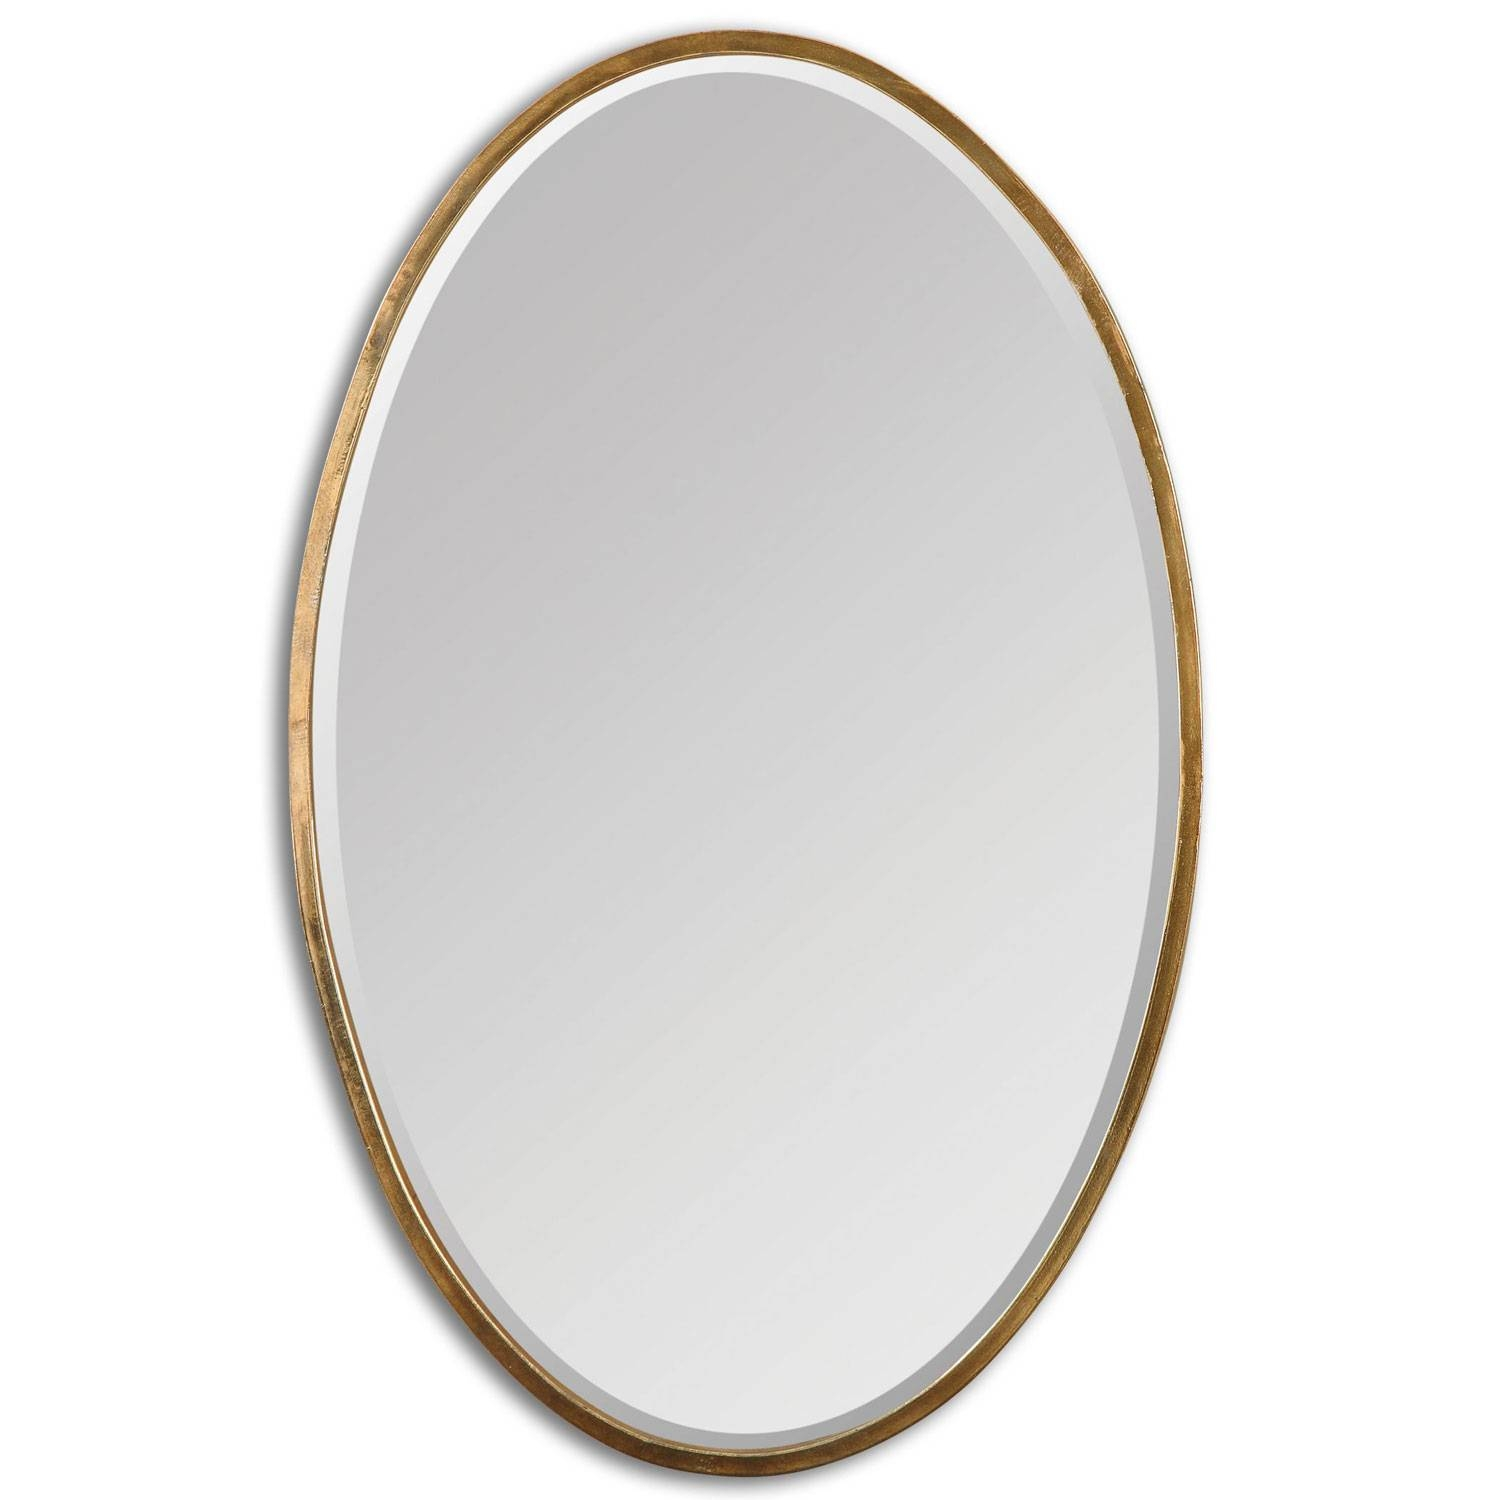 Oval Mirrors | Bellacor regarding Beveled Edge Oval Mirrors (Image 14 of 25)